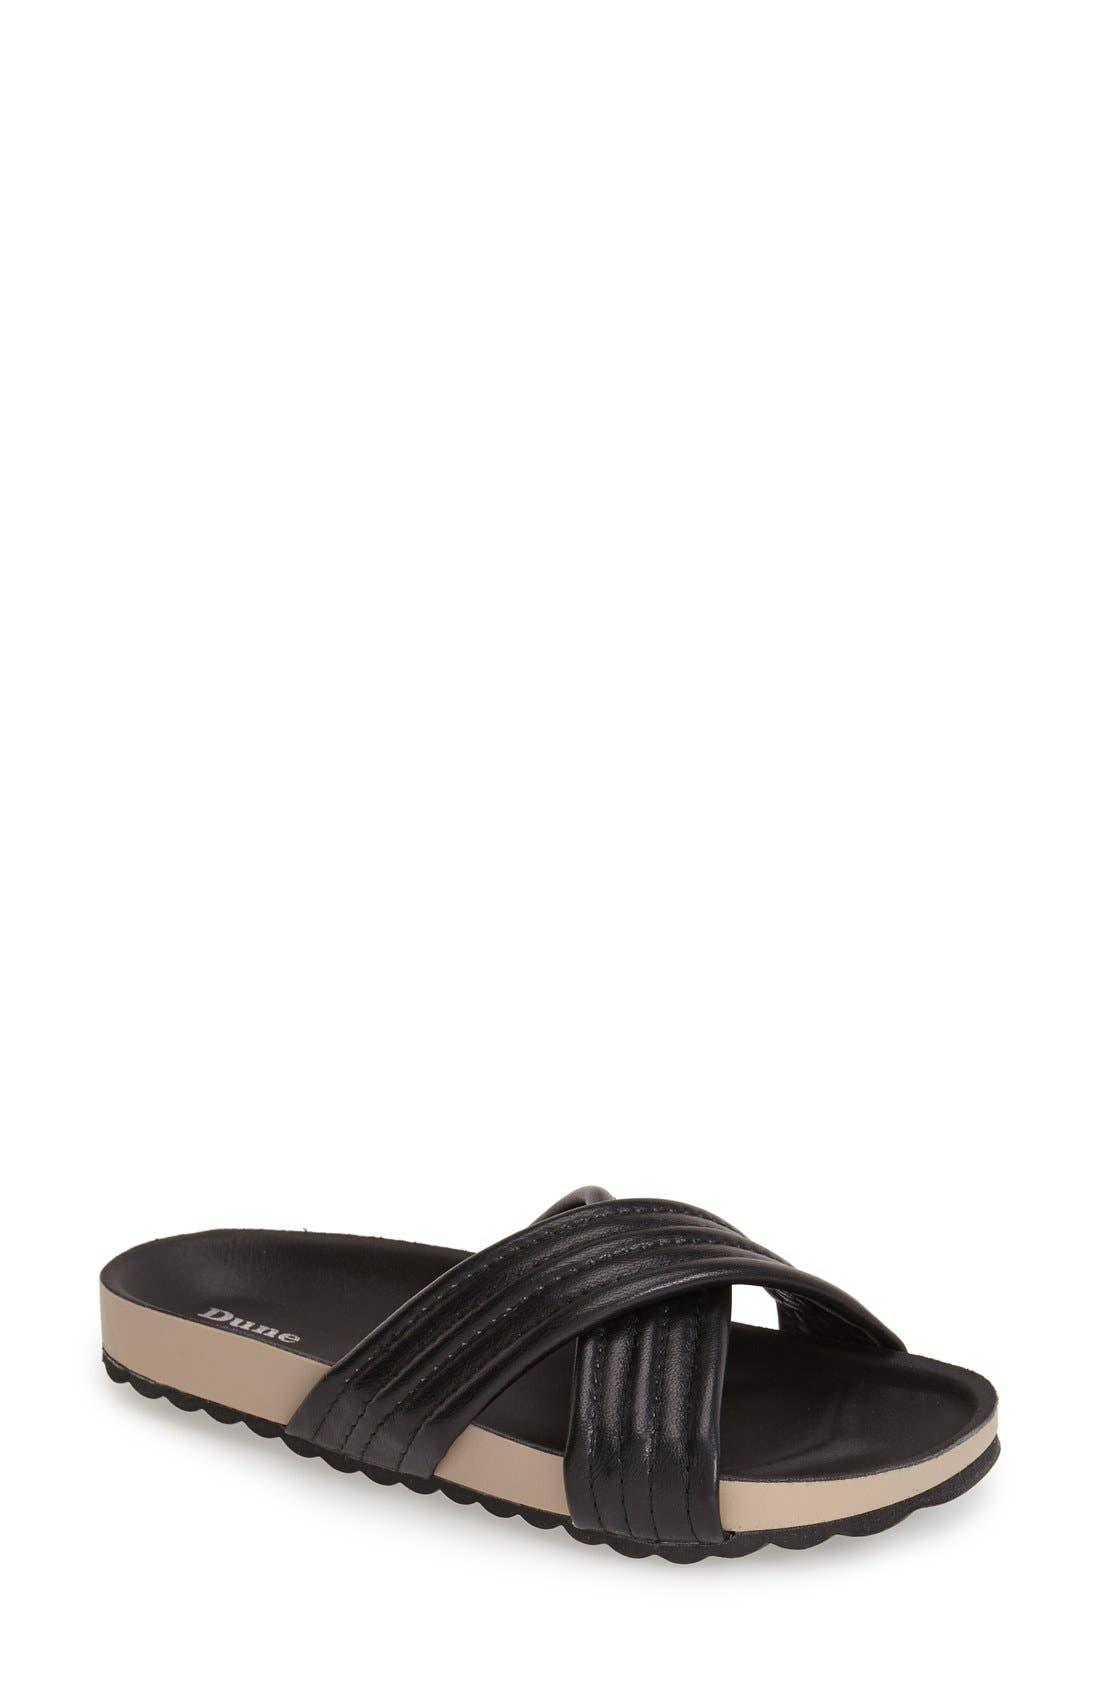 Alternate Image 1 Selected - Dune London 'Jolenes' Leather Slide Sandal (Women)